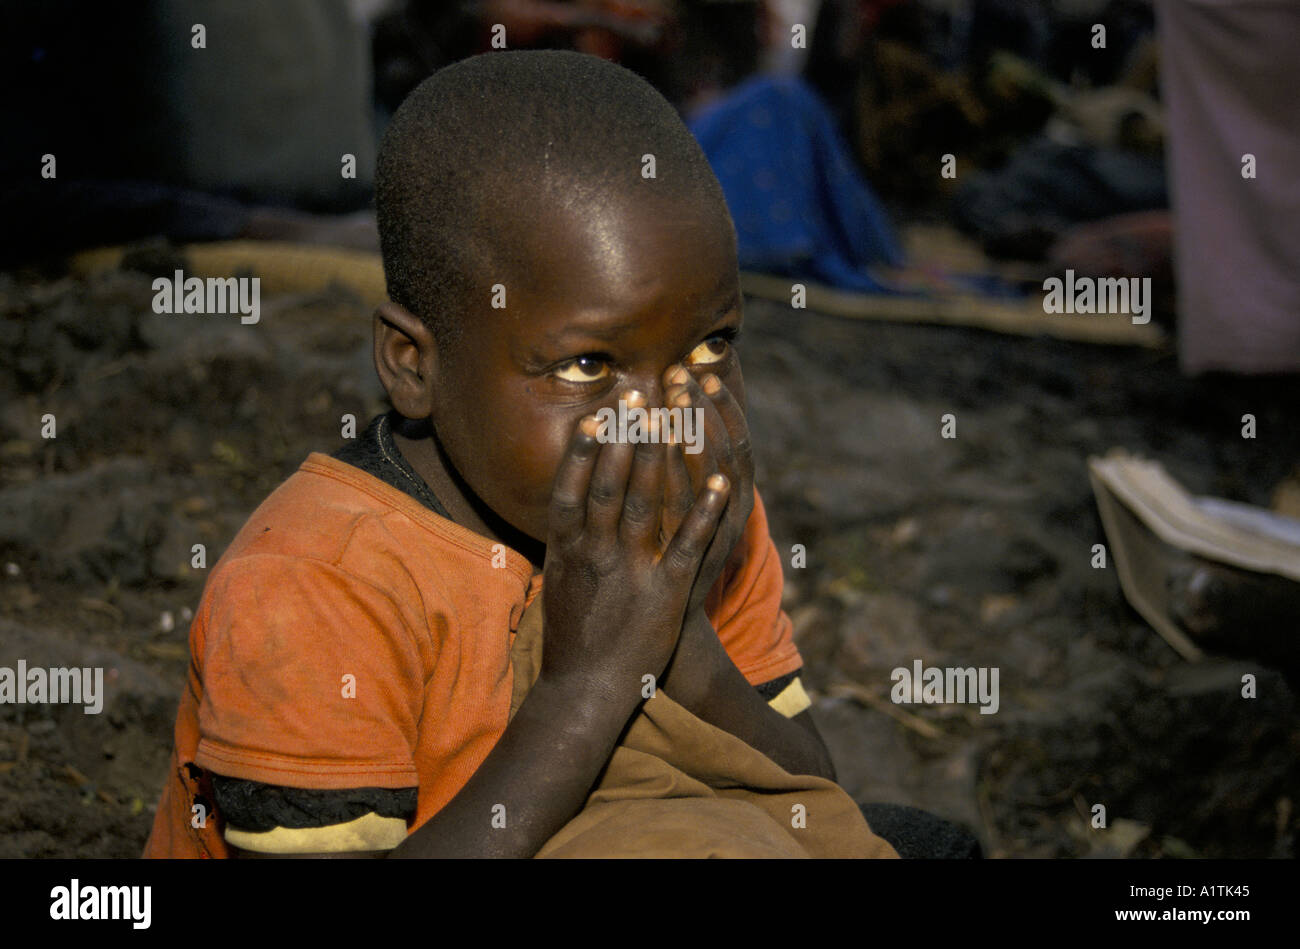 GOMA ZAIRE RWANDAN REFUGEES IN KIBUMBA REFUGEE CAMP JULY 1994,Child sitting with her hands in front of her face. - Stock Image